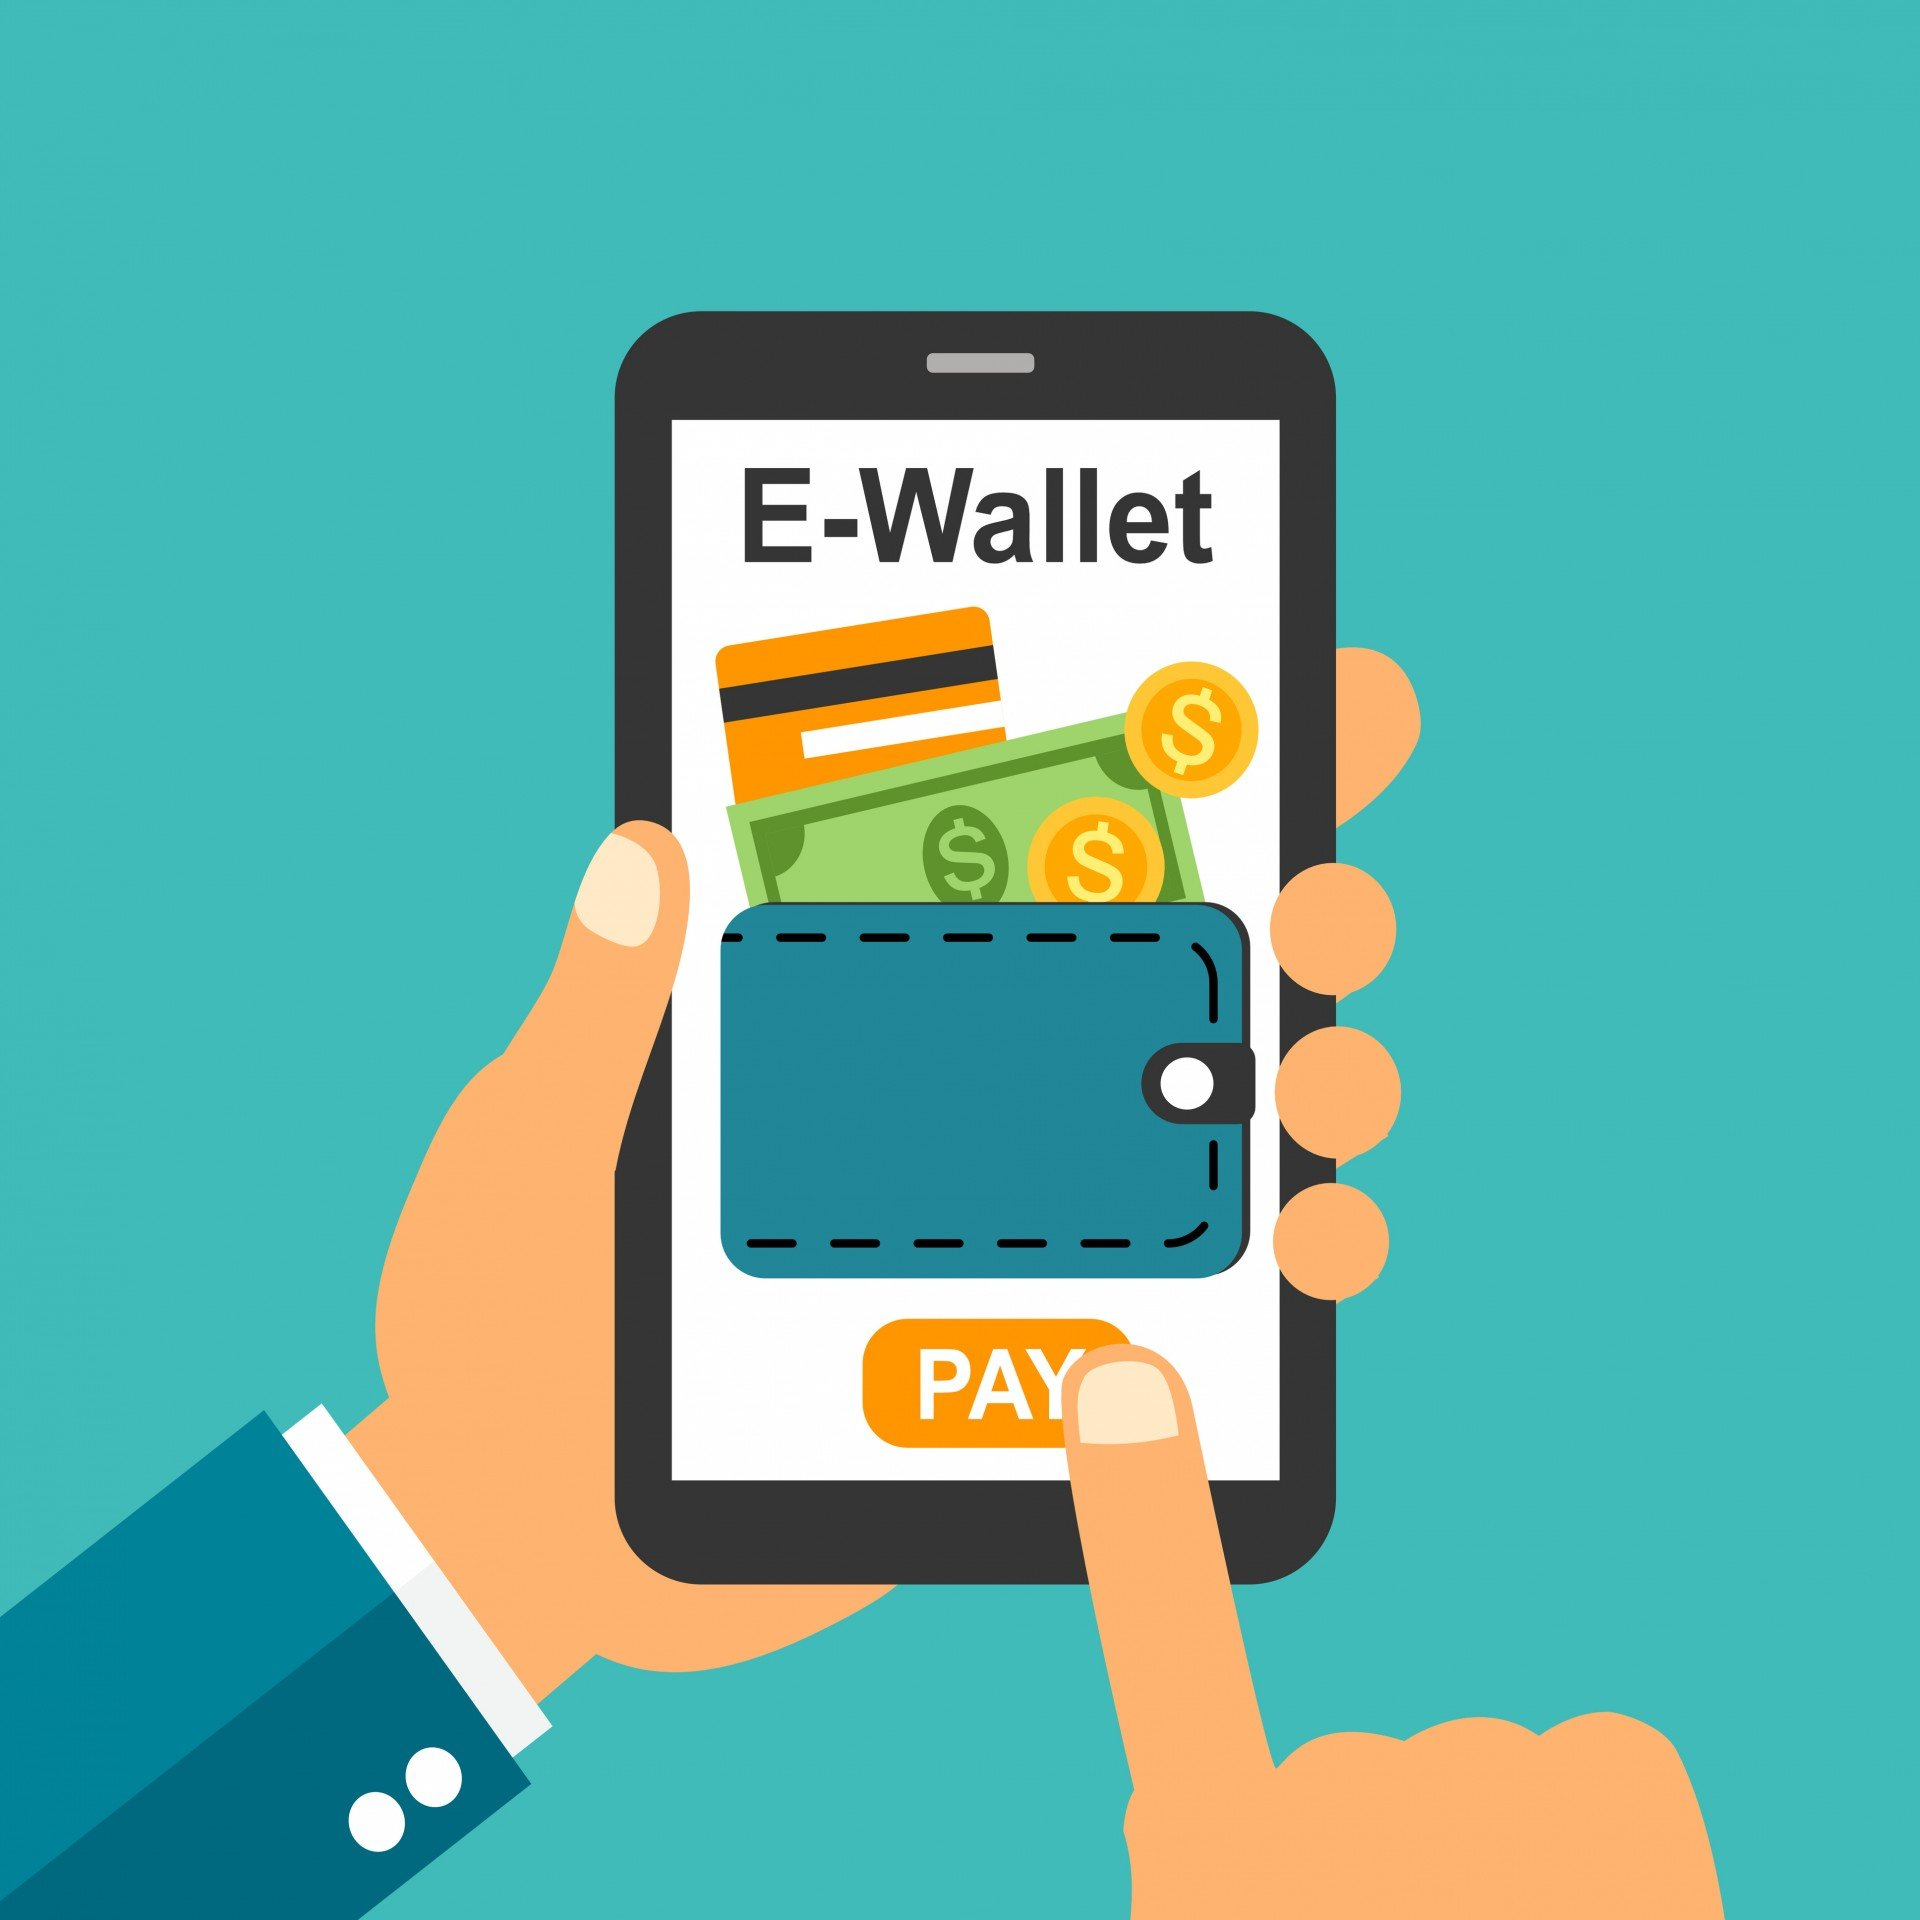 The Principal e-Cash Fund will be available on TNG Digital's e-wallet platform soon